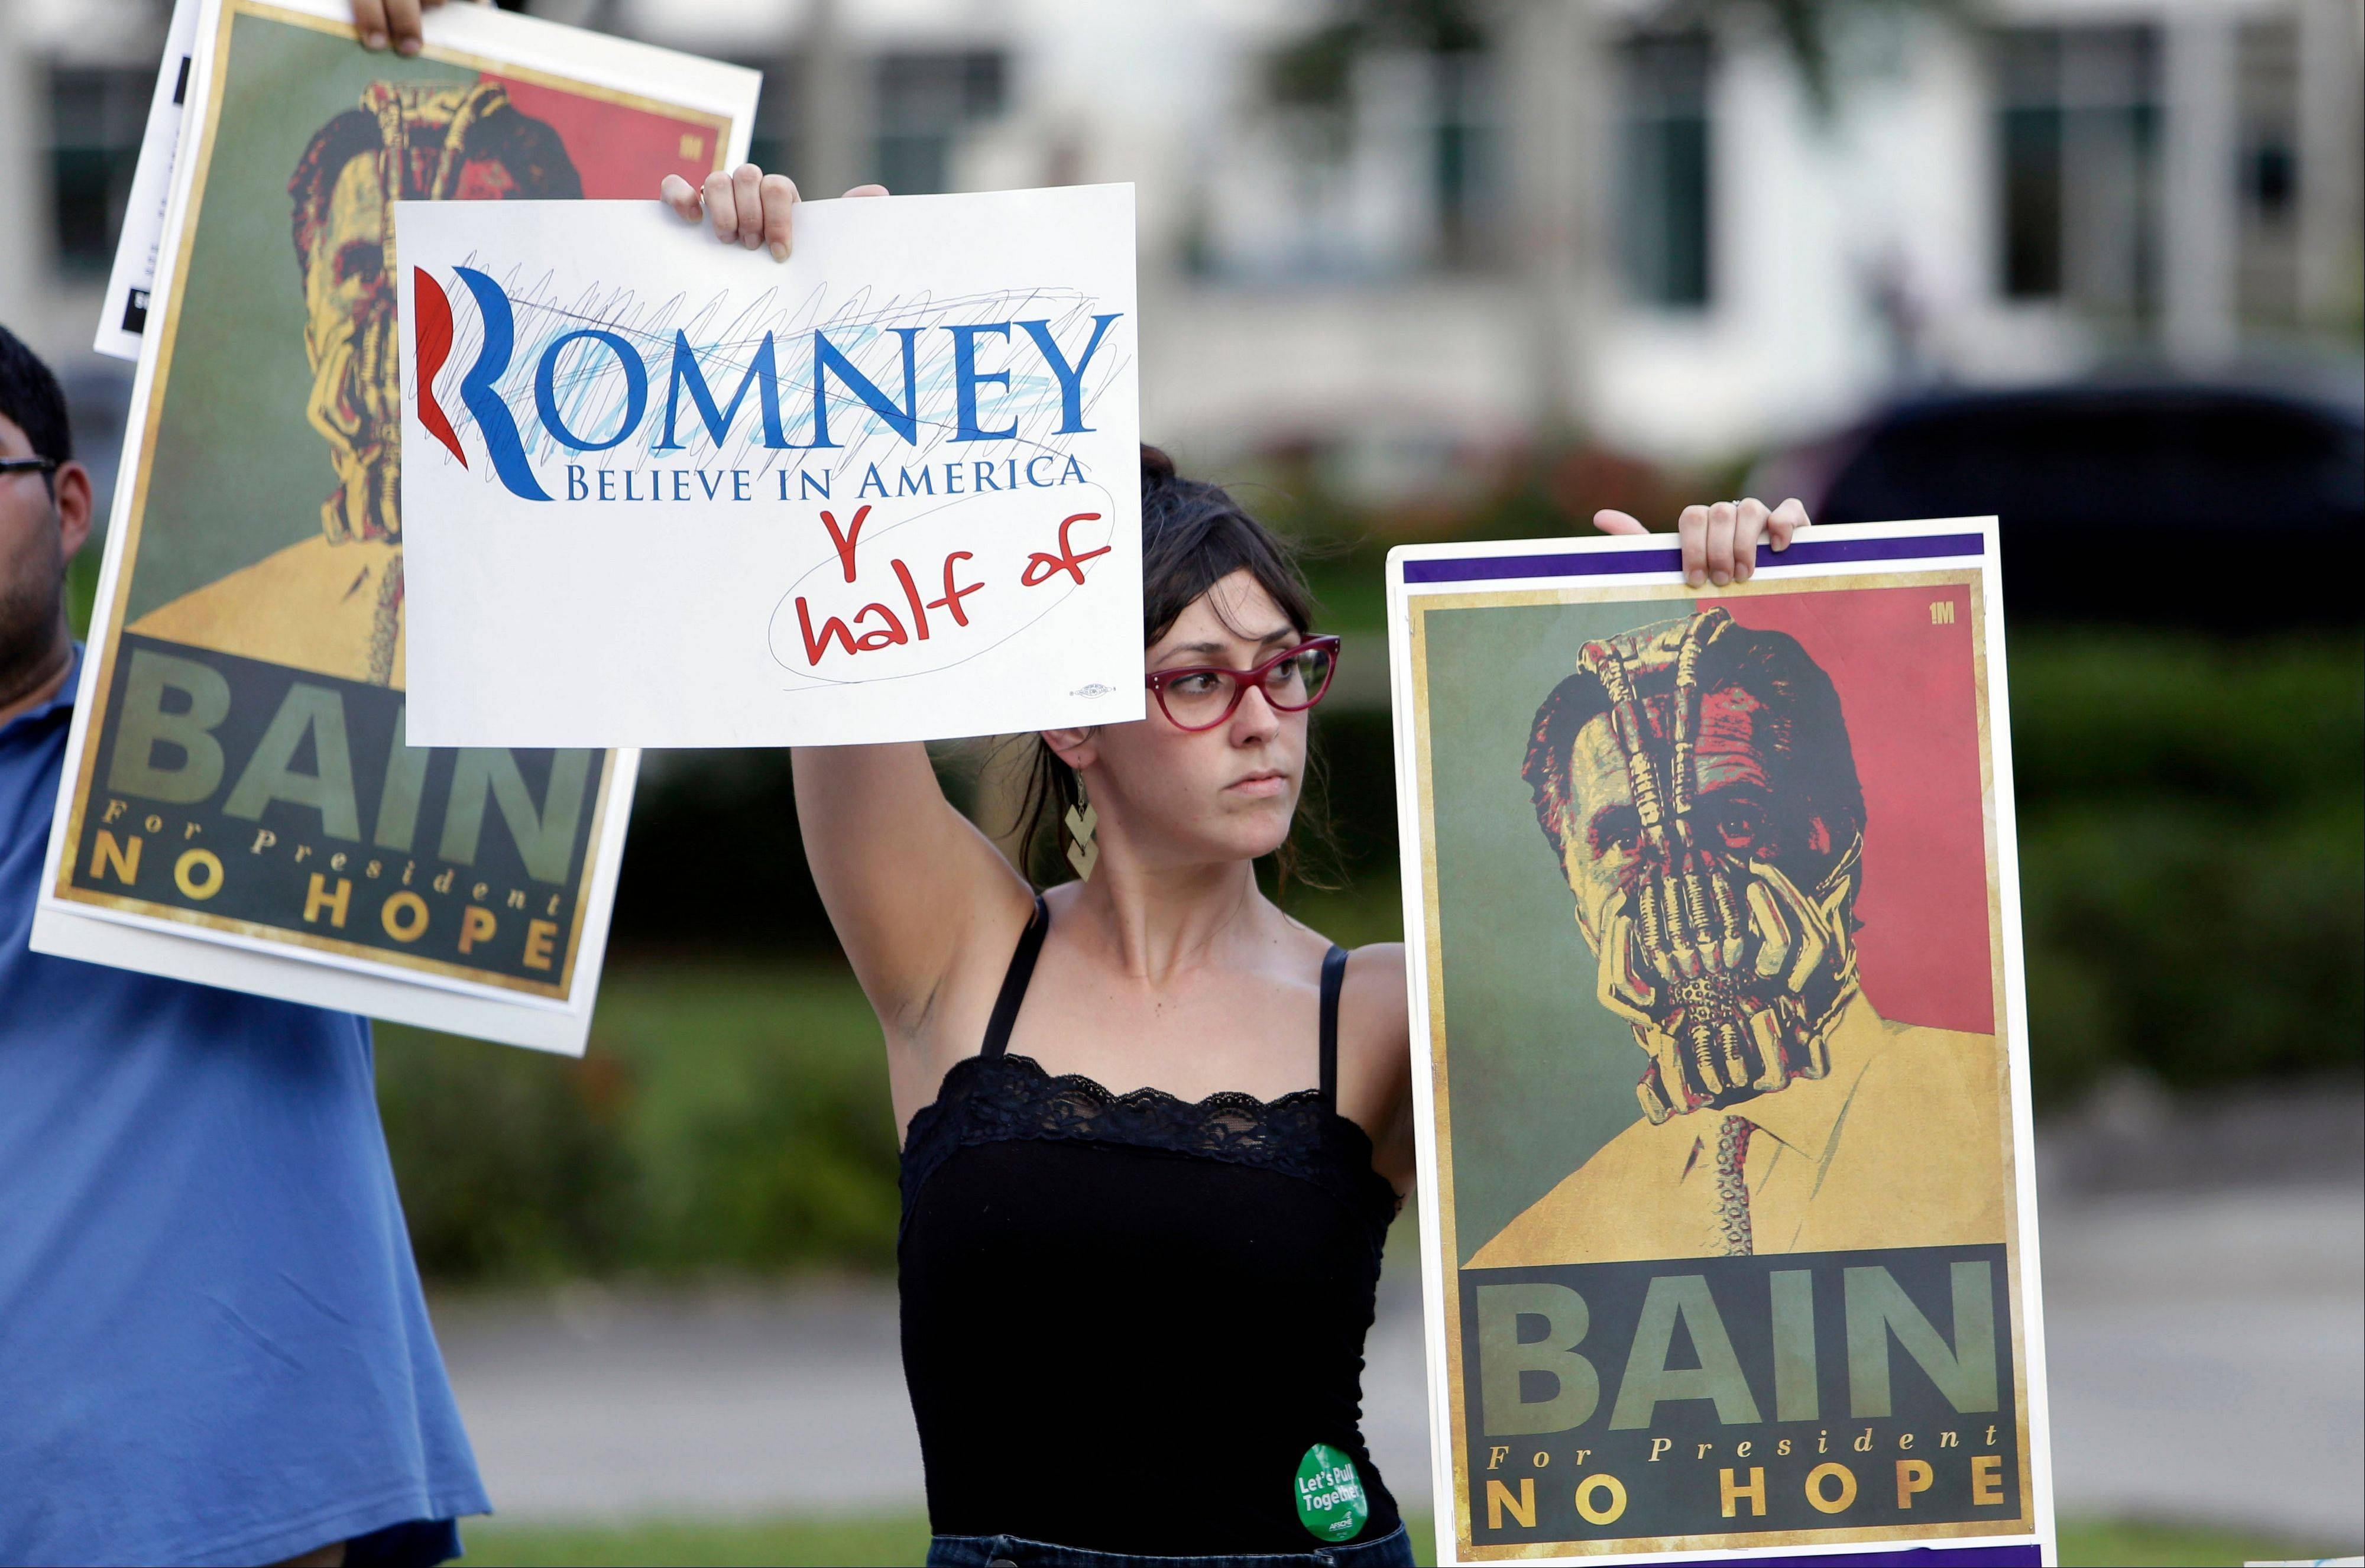 Rebecca Fernandez of Miami protests outside of the University of Miami where Republican presidential candidate Mitt Romney was attending a Meet the Candidates forum held by Univision, Wednesday, Sept. 19, 2012, in Coral Gables, Fla.